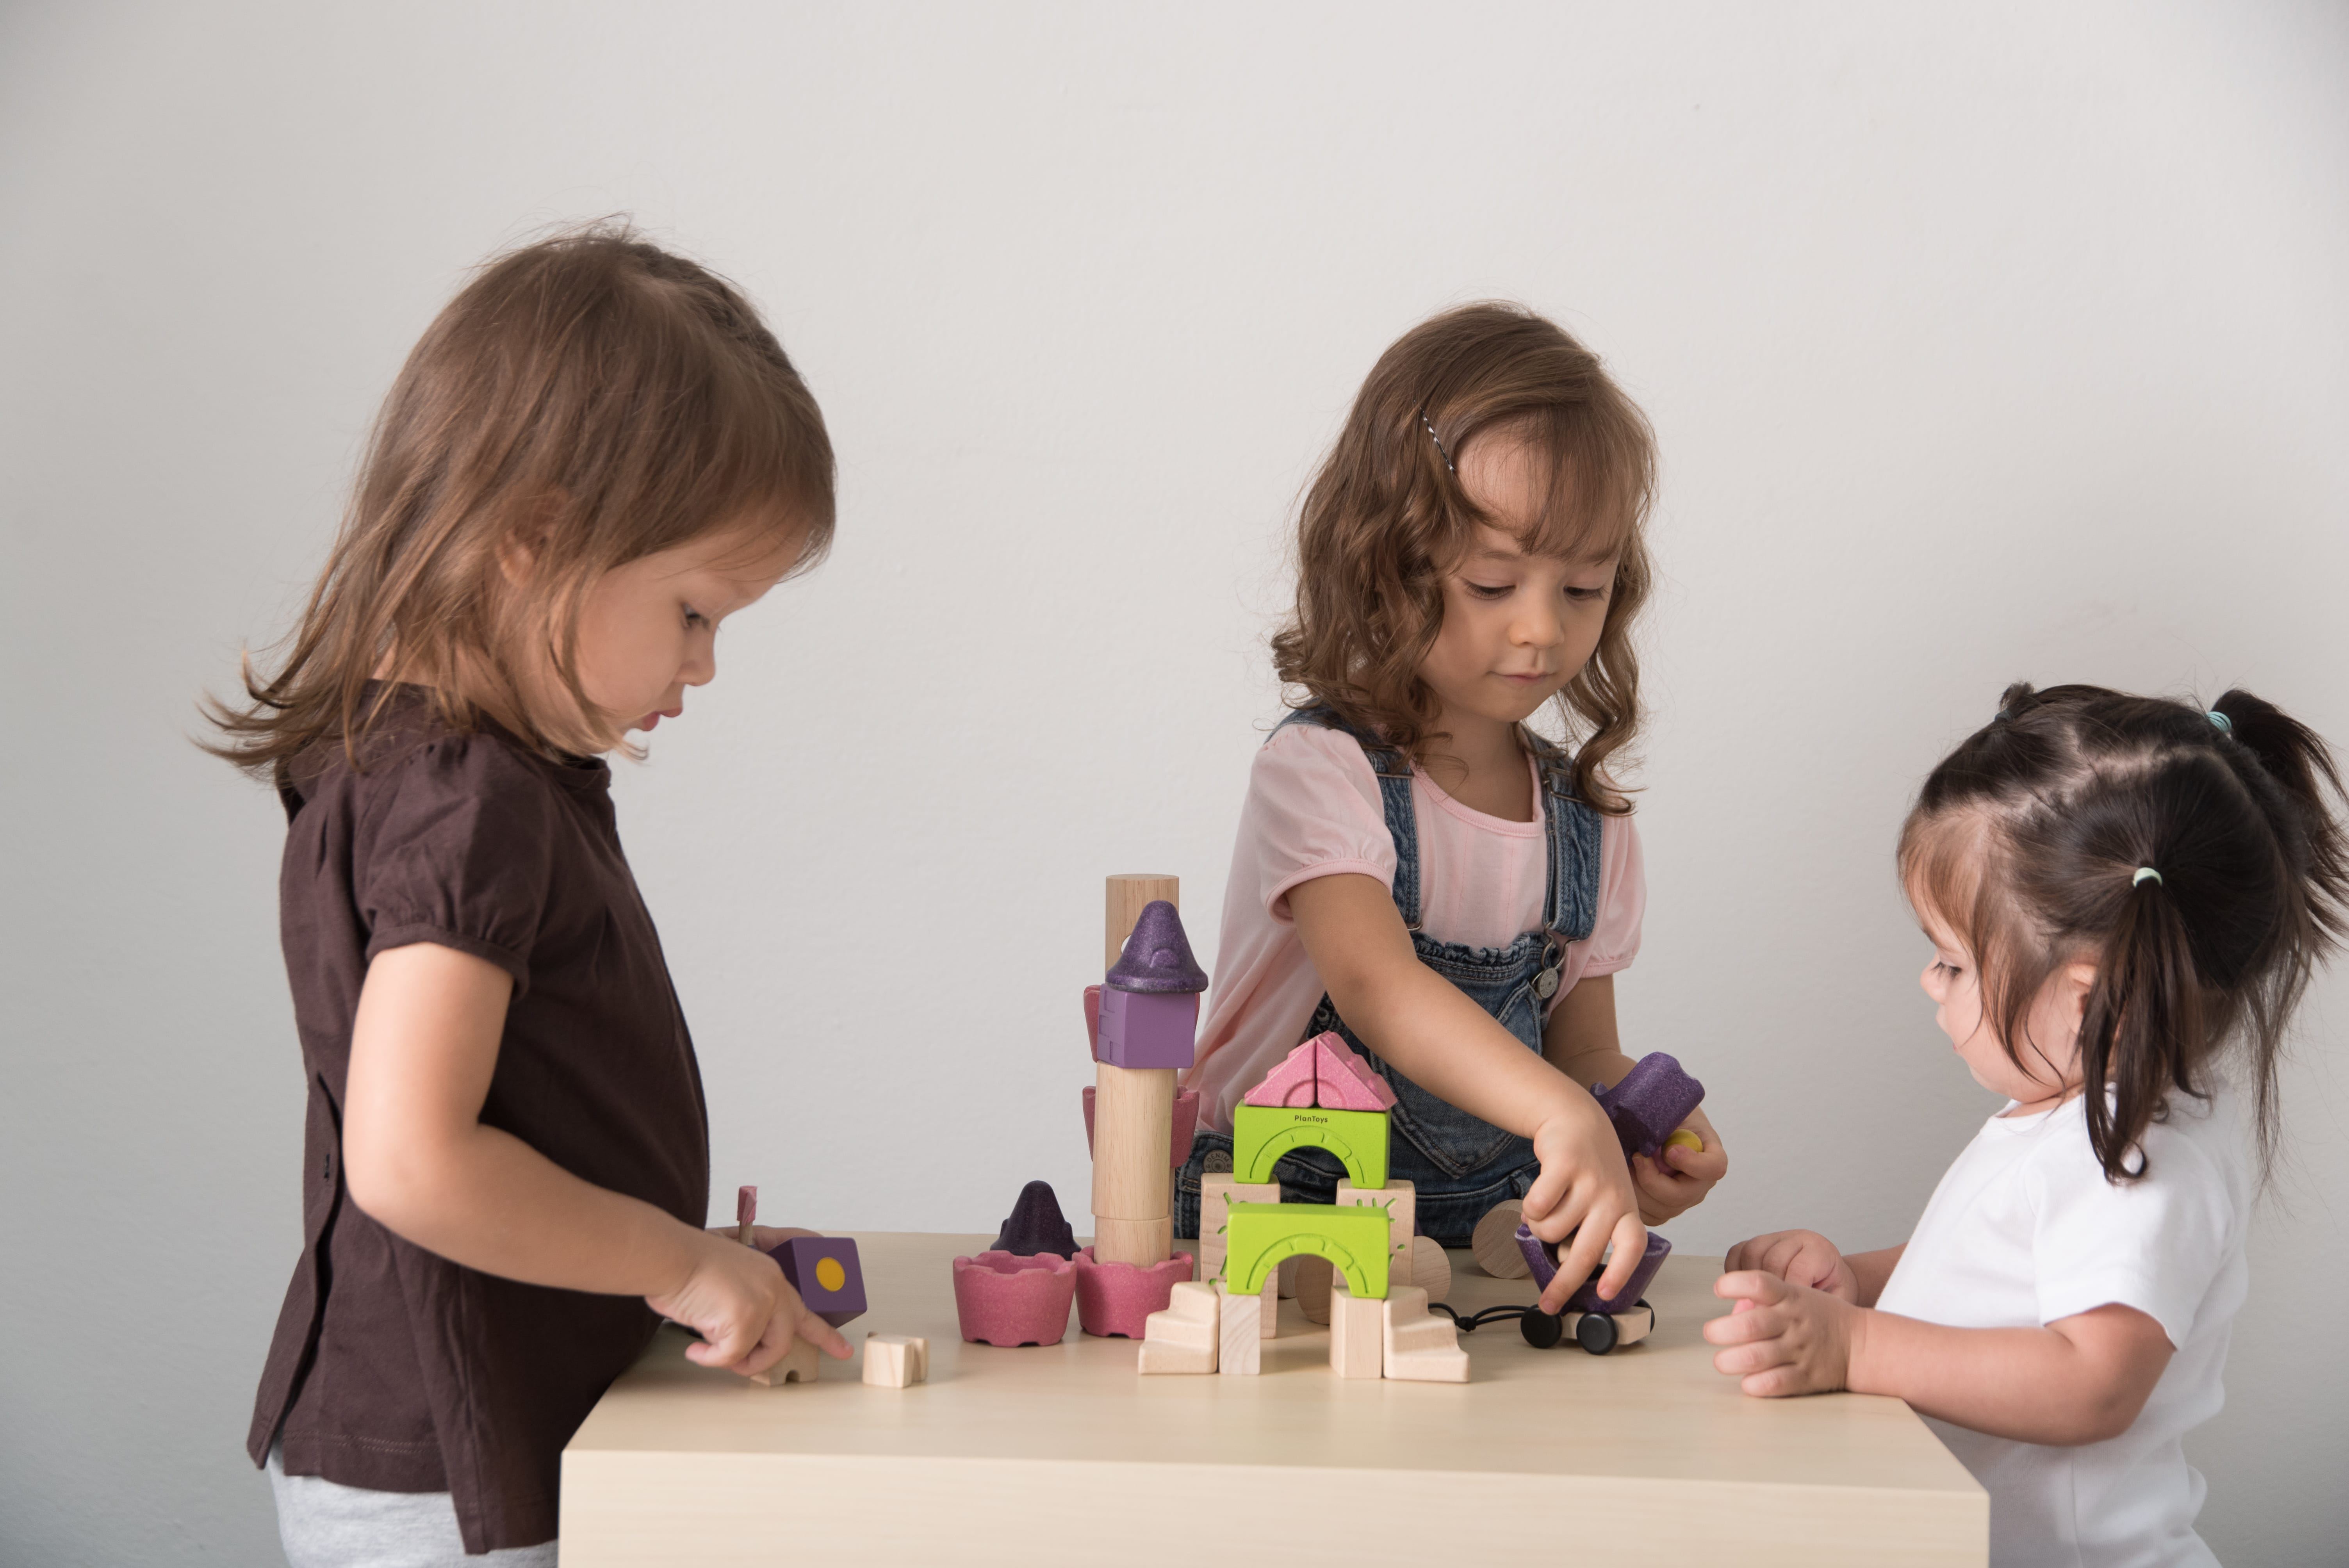 5650_PlanToys_FAIRY_TALE_BLOCKS_Blocks_and_Construction_Mathematical_Imagination_Fine_Motor_Language_and_Communications_Tactile_3yrs_Wooden_toys_Education_toys_Safety_Toys_Non-toxic_2.jpg